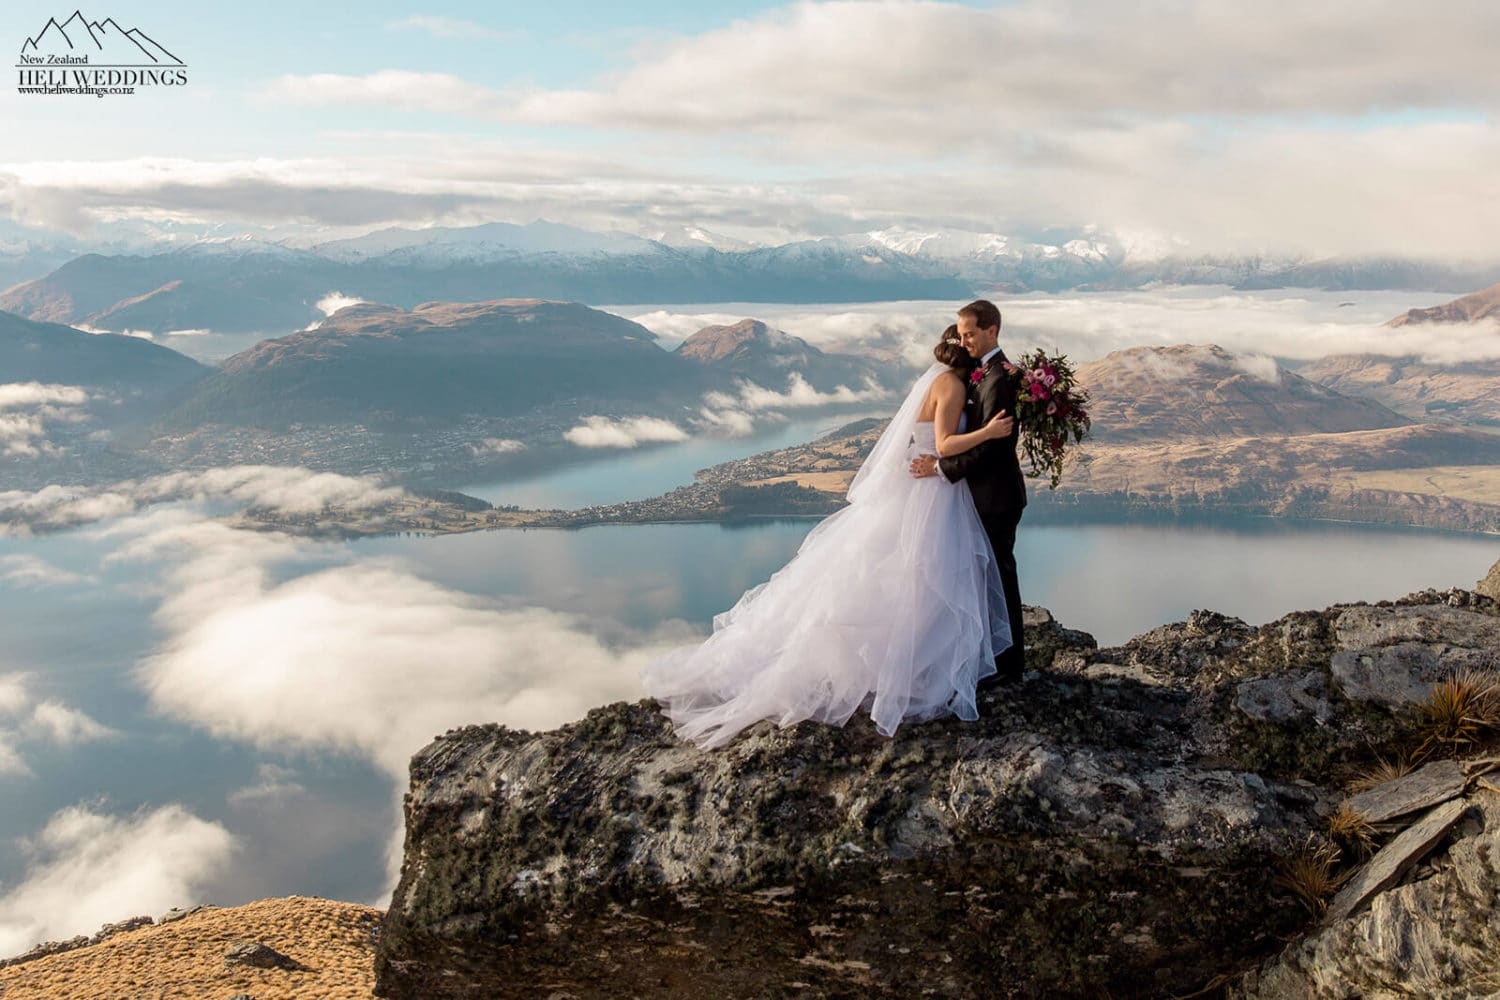 The Ridge,Beautiful mountain Wedding in New Zealand, destination elopement wedding